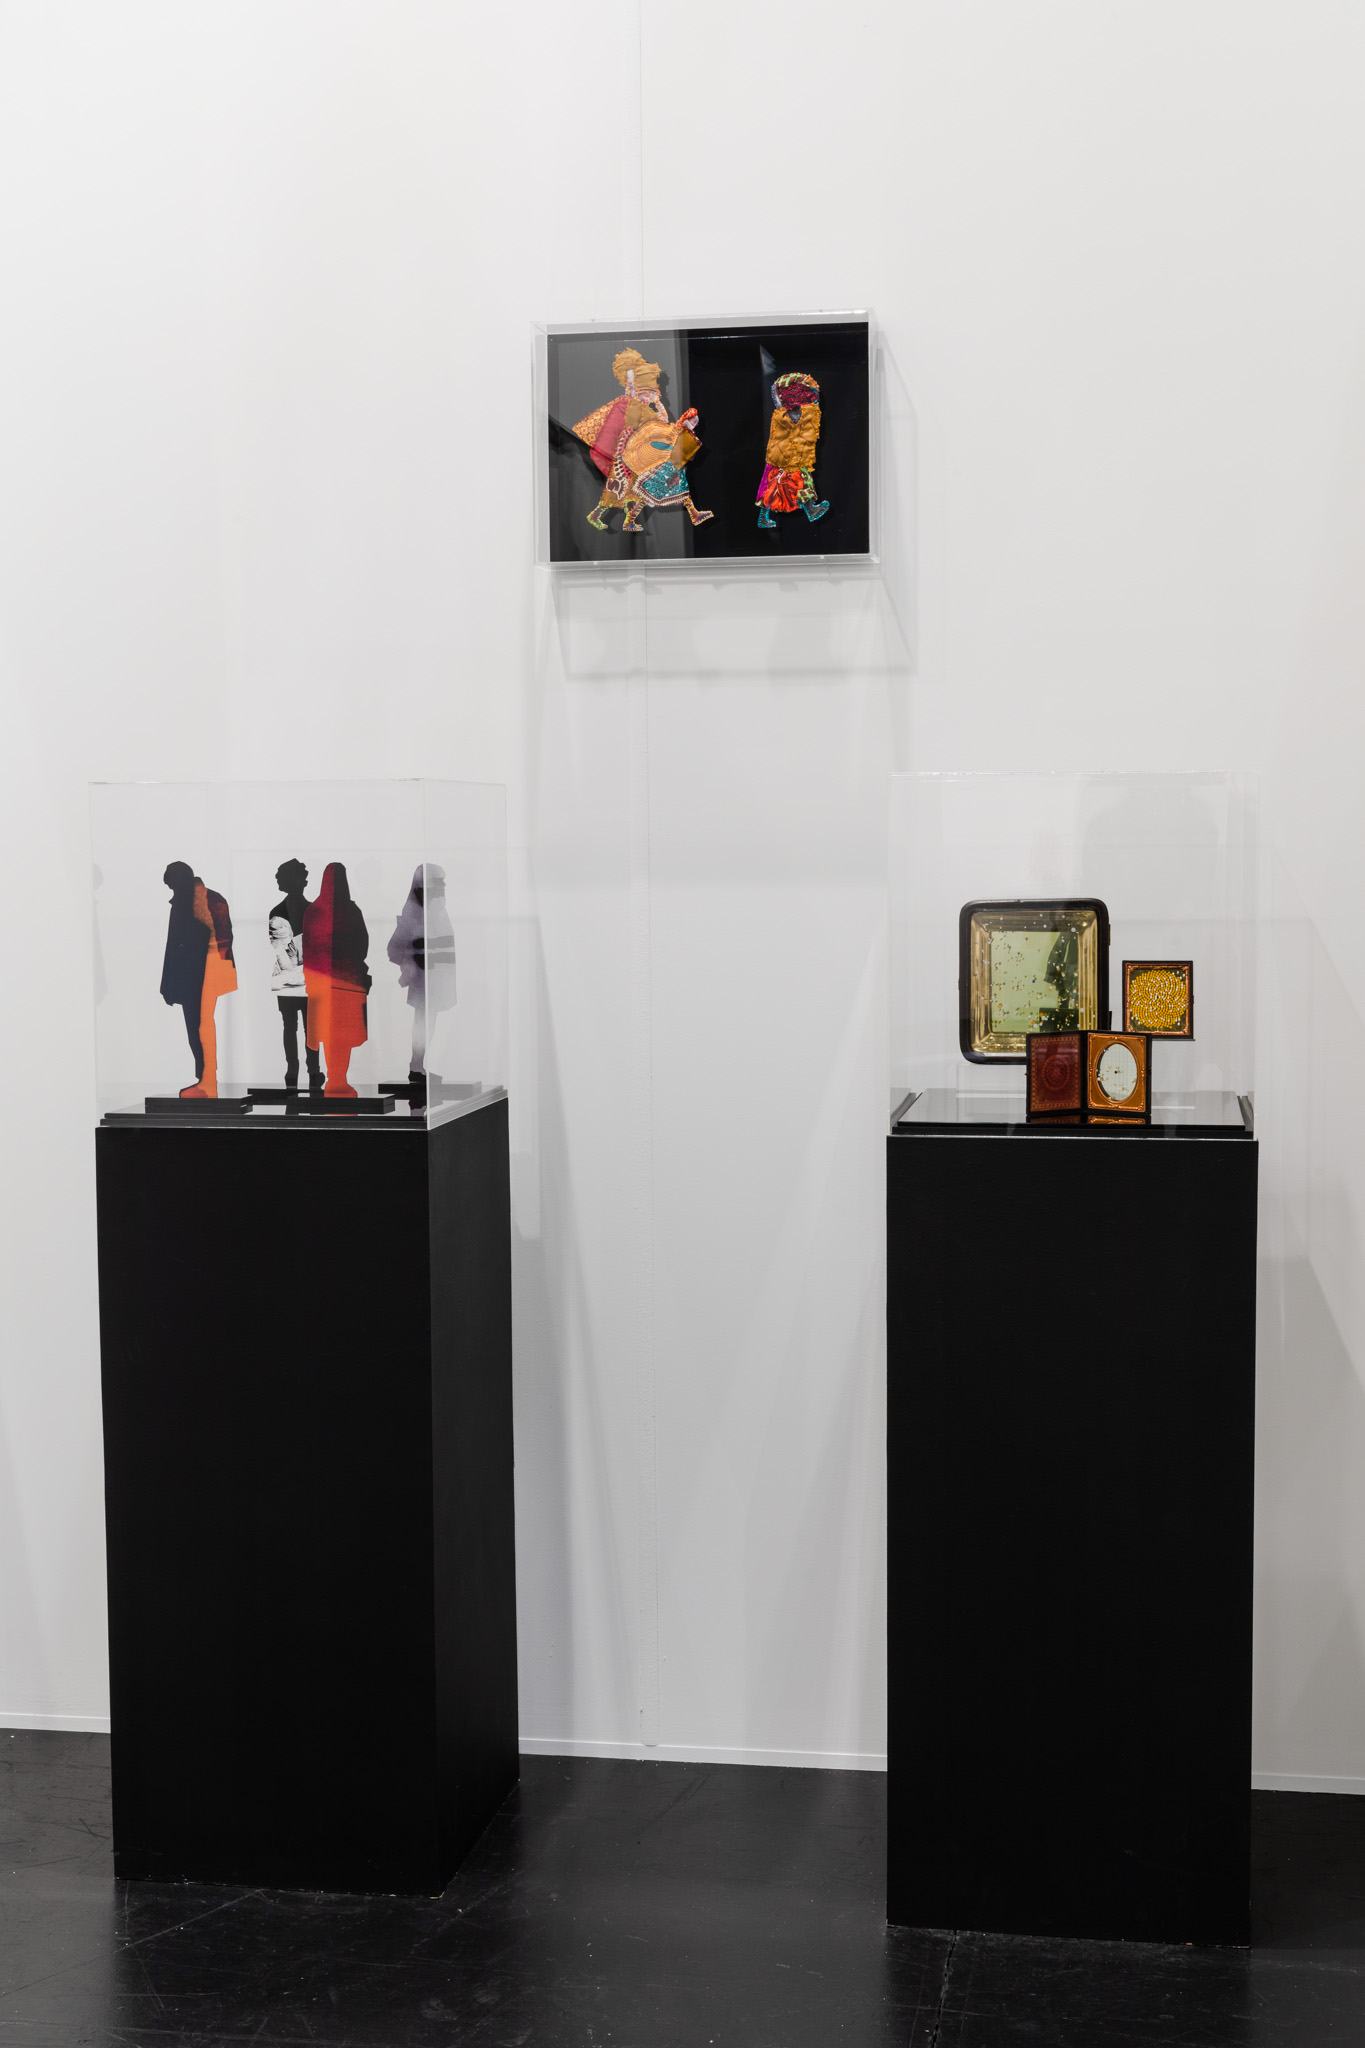 OHouseStudios_SydContemporary_13_09_18_Credit_Jacquie_Manning-3.jpg